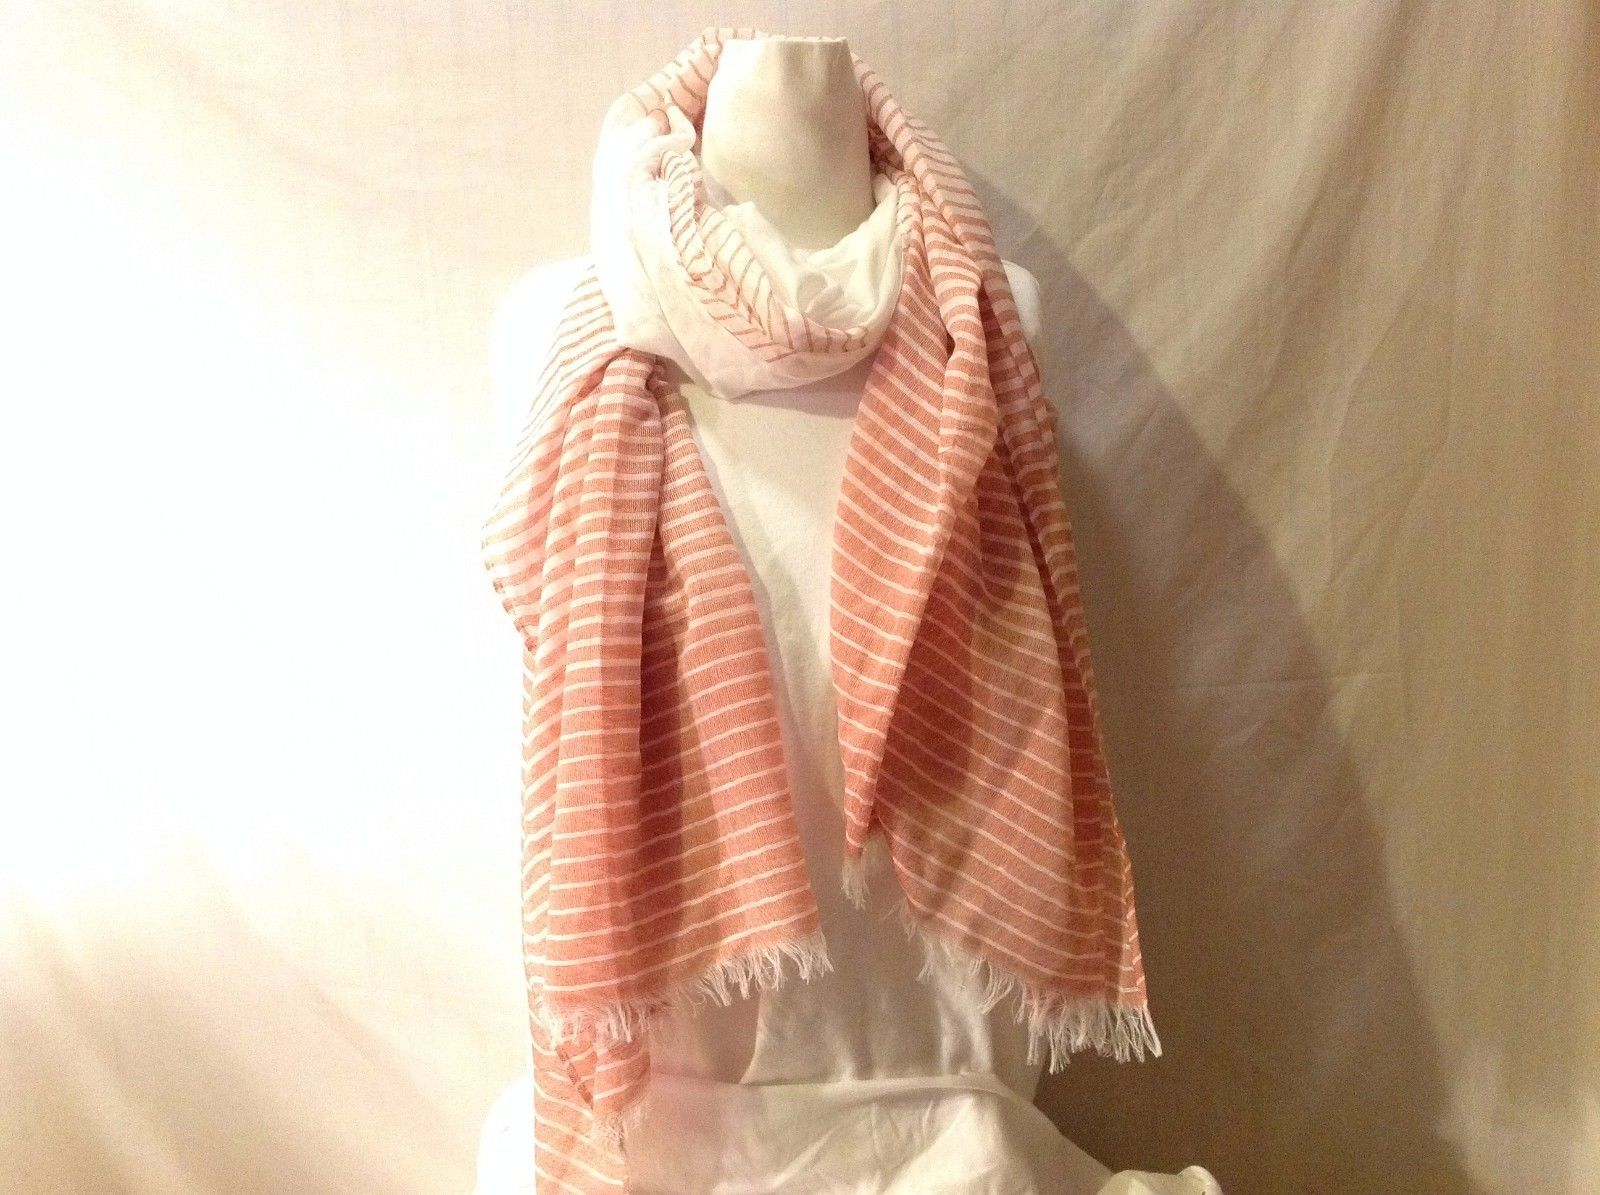 NWT New With Tags Light Salmon White Striped Scarf Super Soft Versatile Large